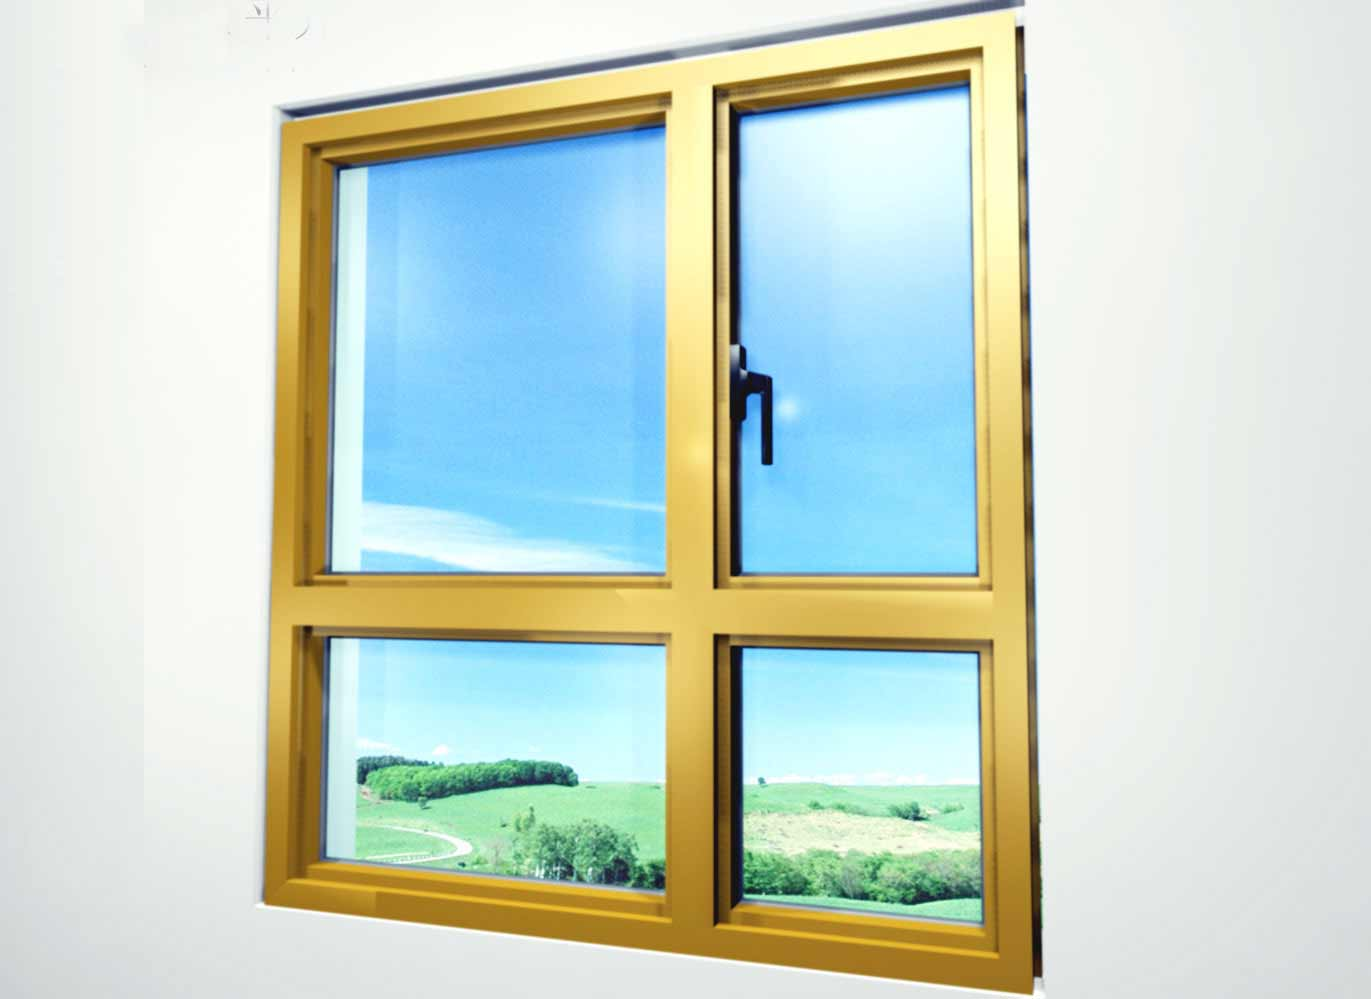 Golden metal awning windows design